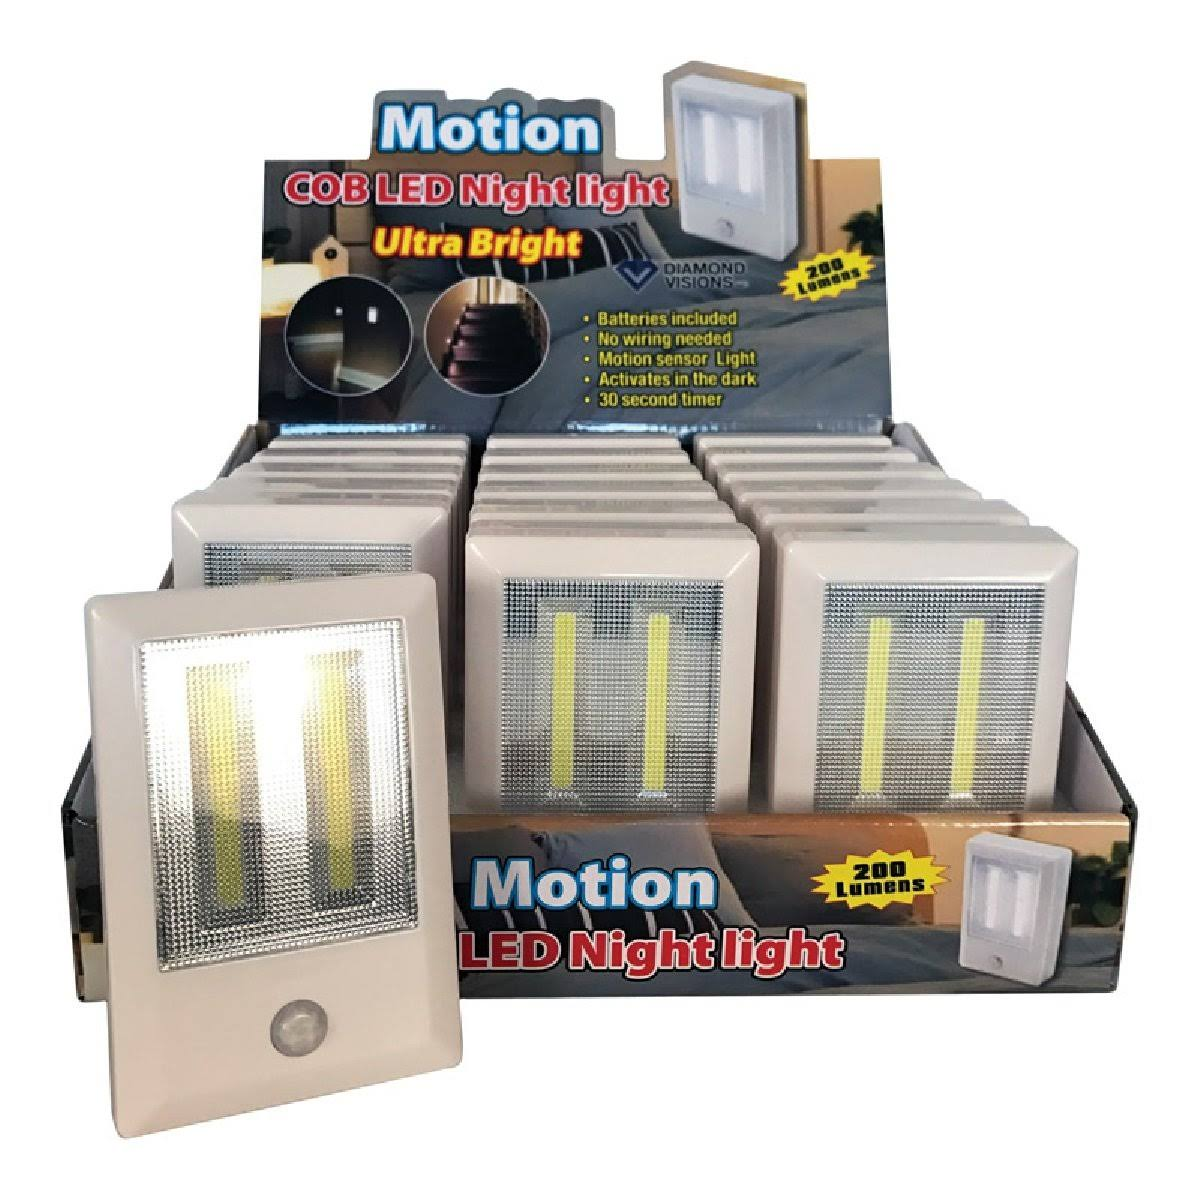 Diamond Visions 08-1899 Motion COB LED Night Light, 200 Lumens